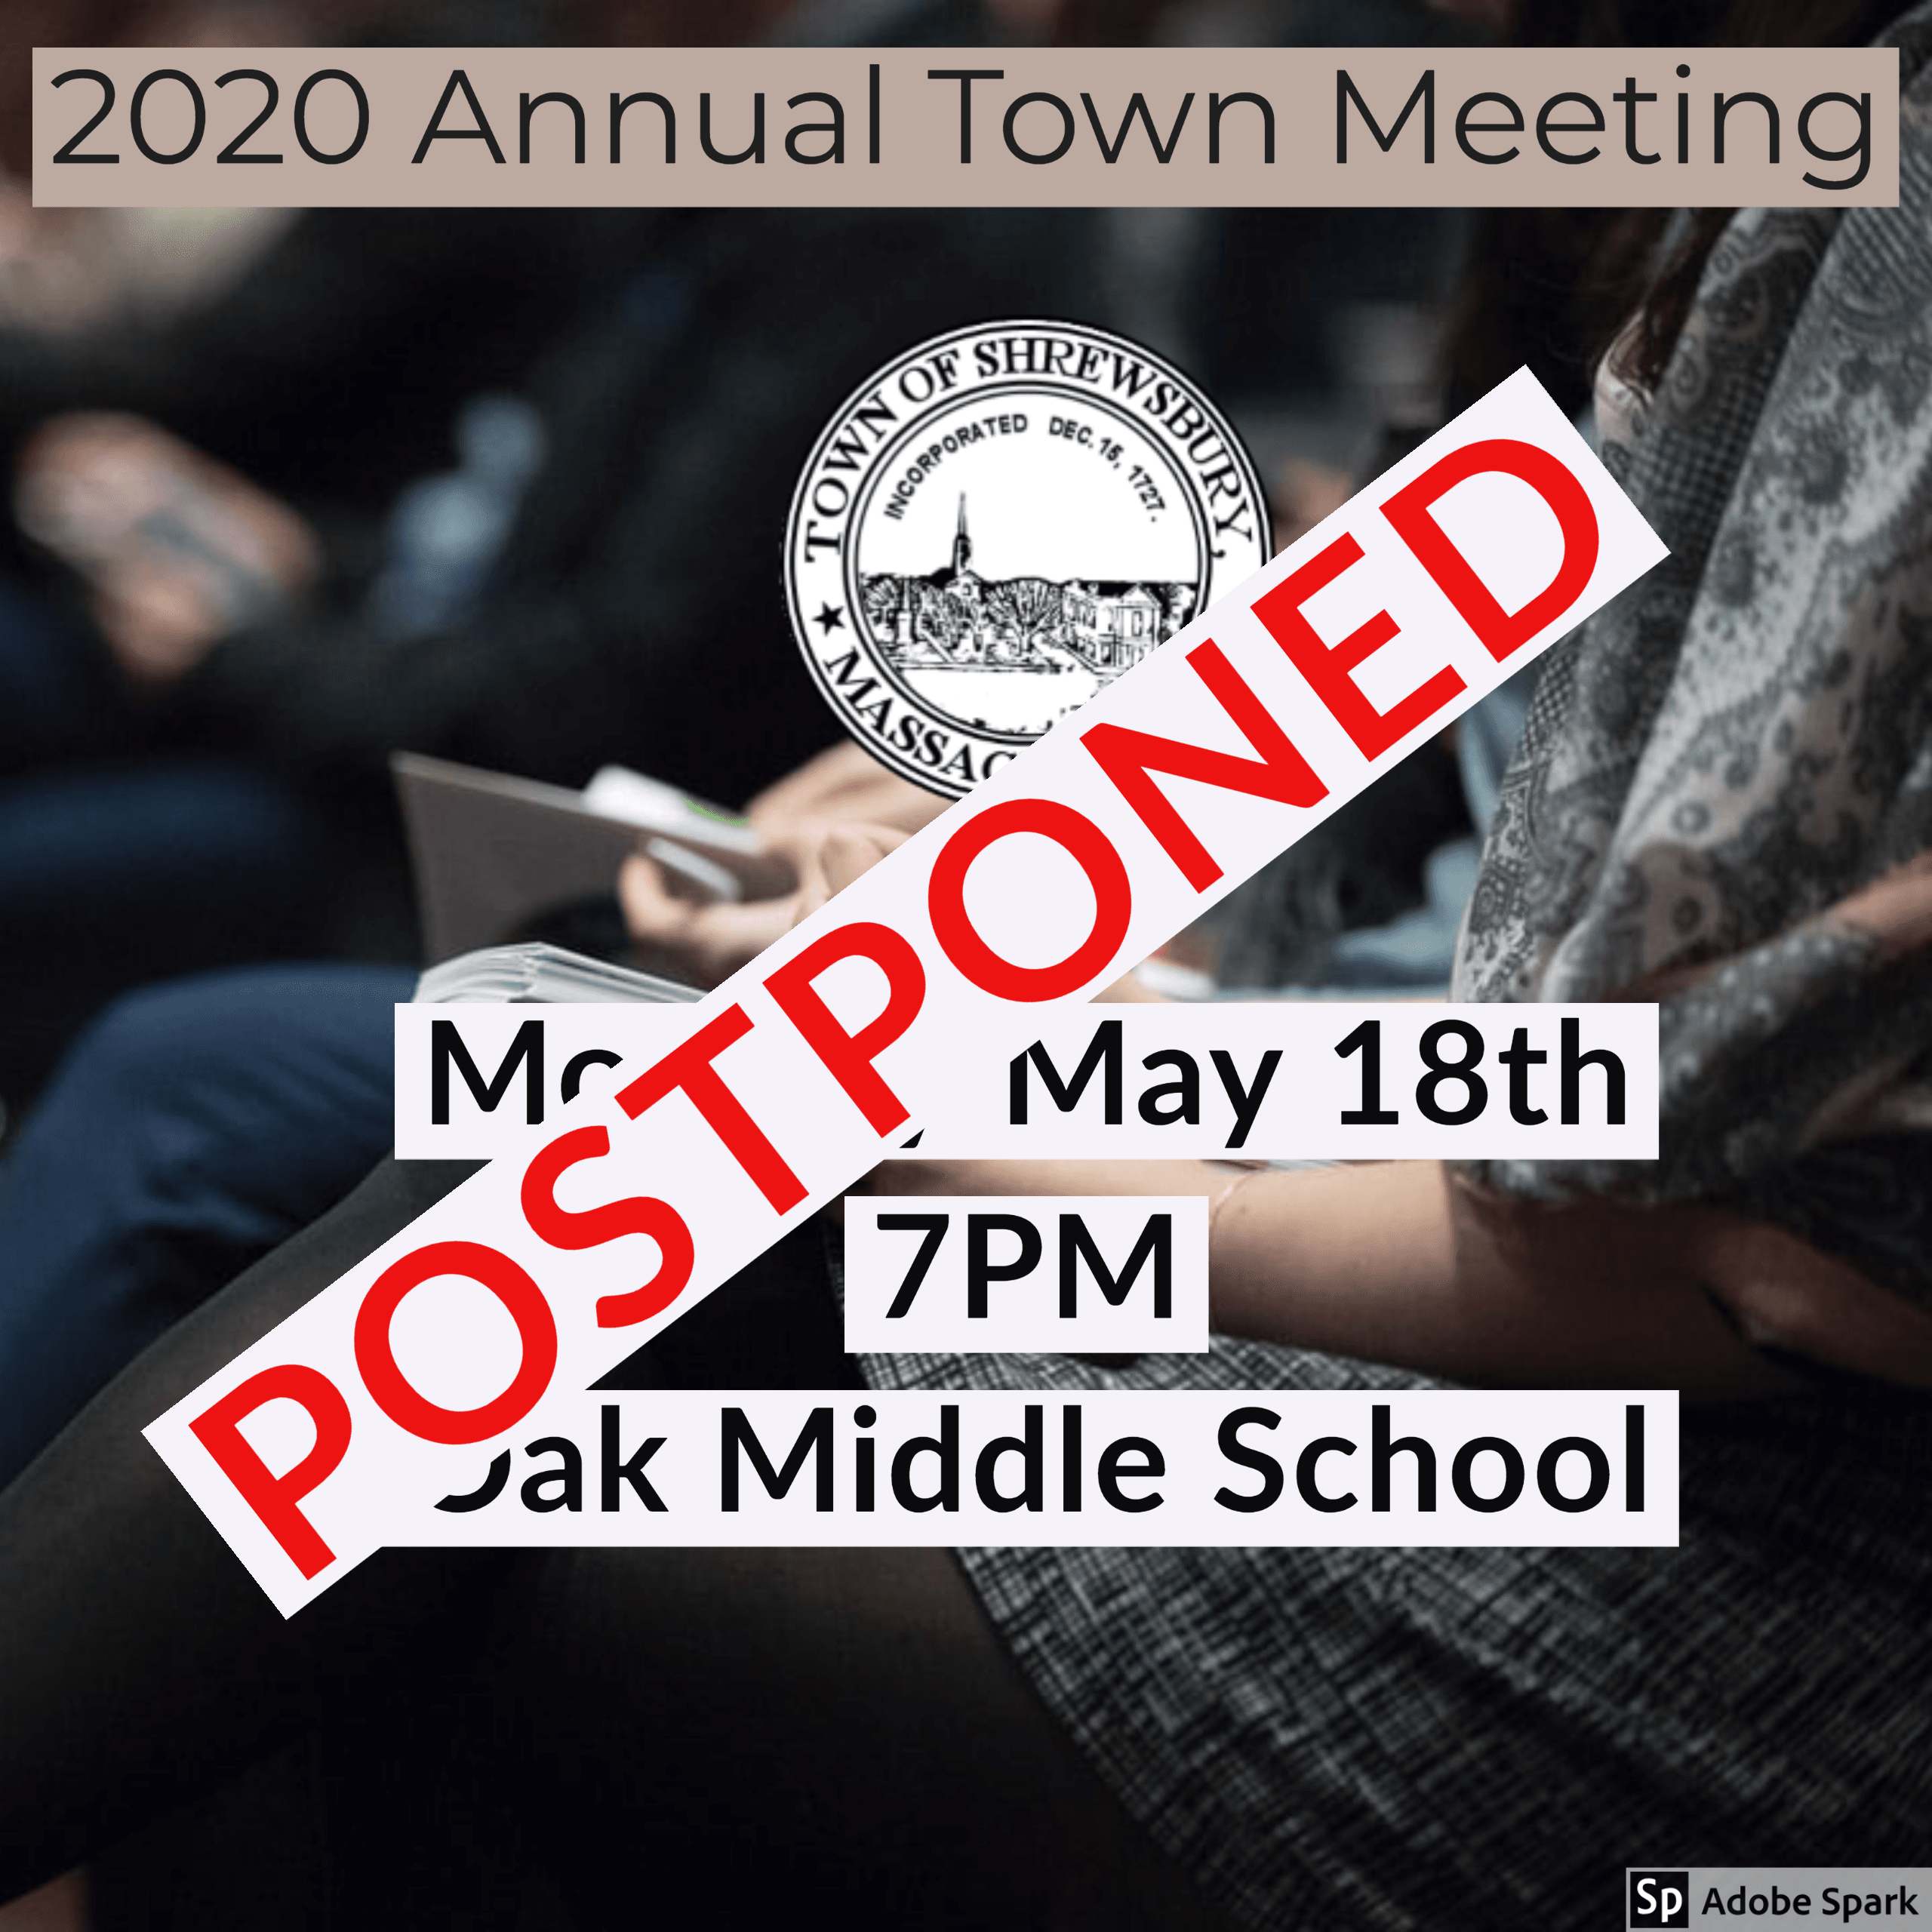 2020 Annual Town Meeting Image